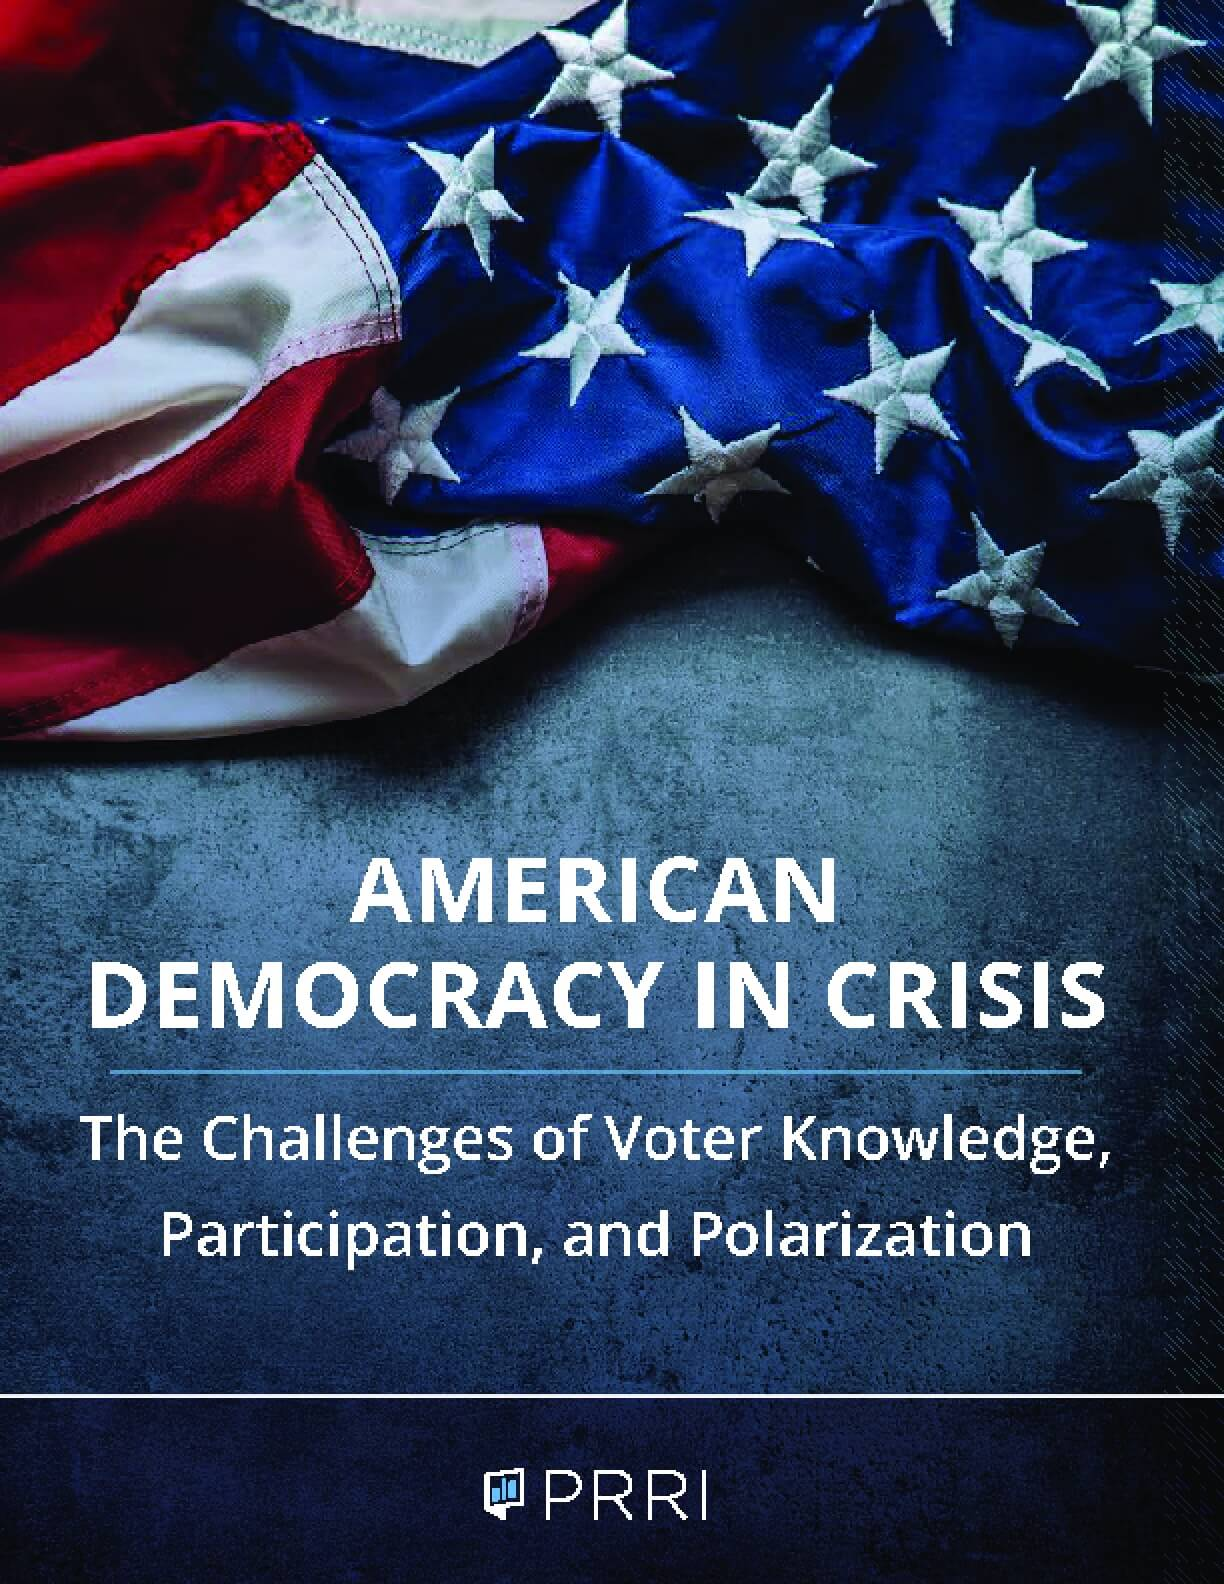 American Democracy in Crisis: The Challenges of Voter Knowledge, Participation, and Polarization